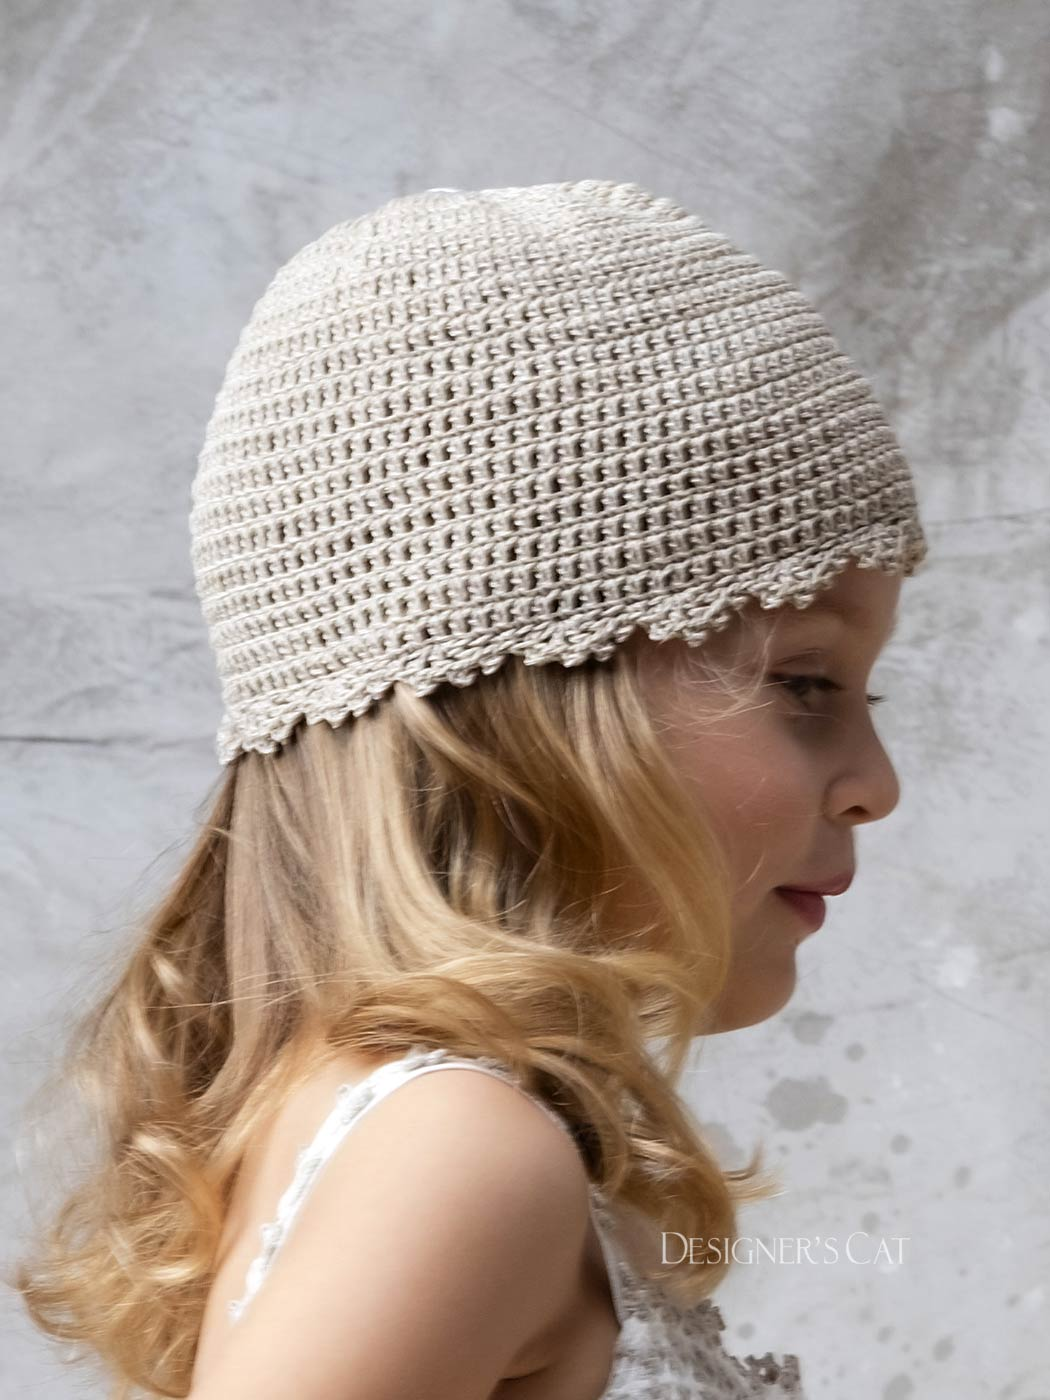 Naxos knitted bonnet